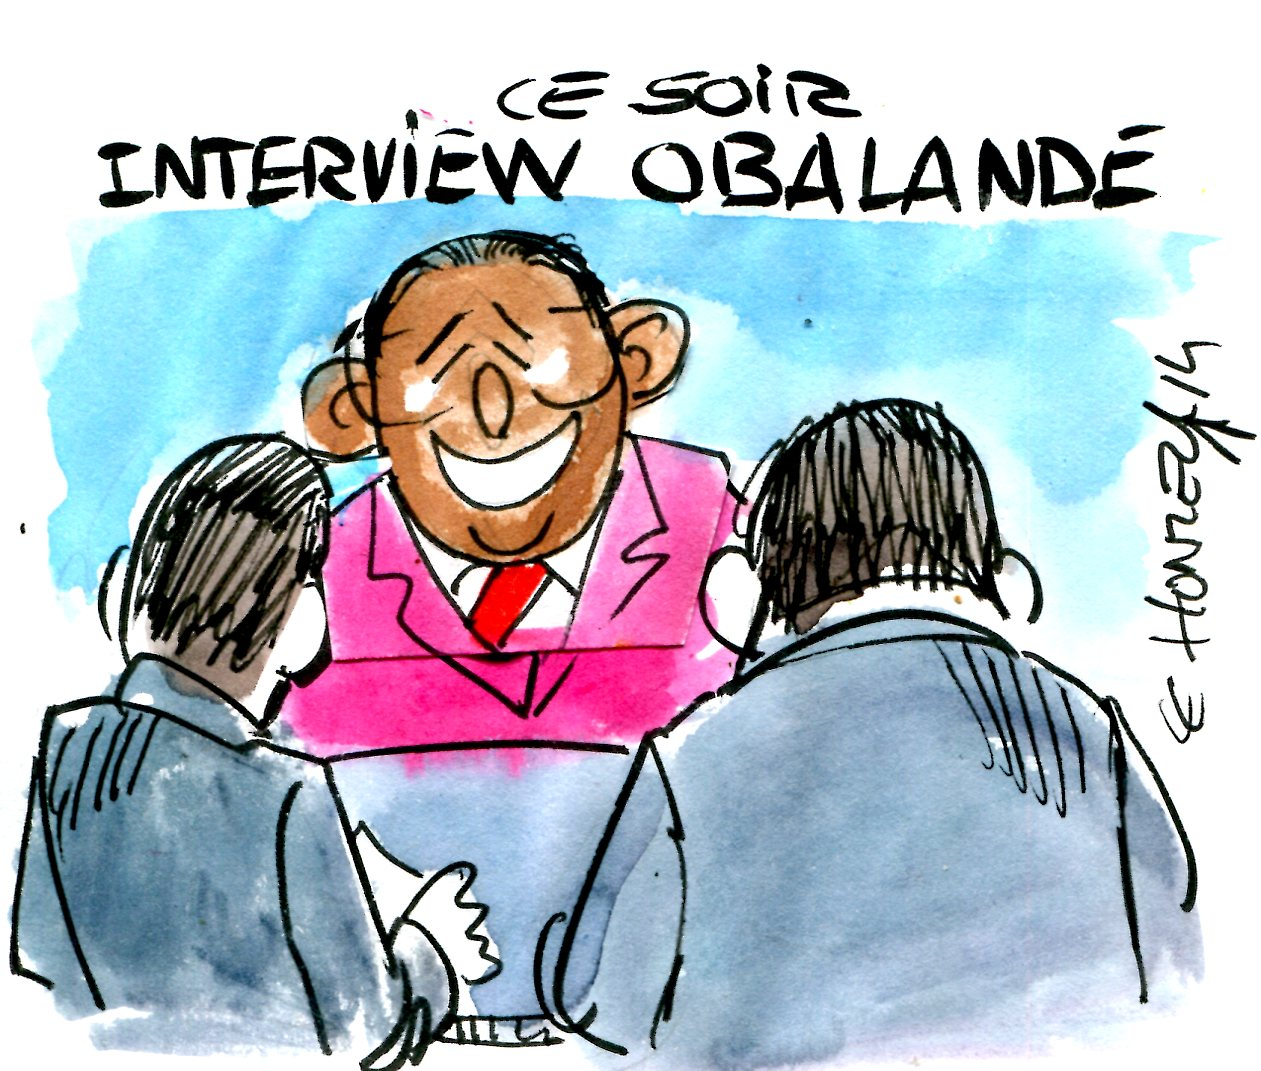 hollande obama rené le honzec